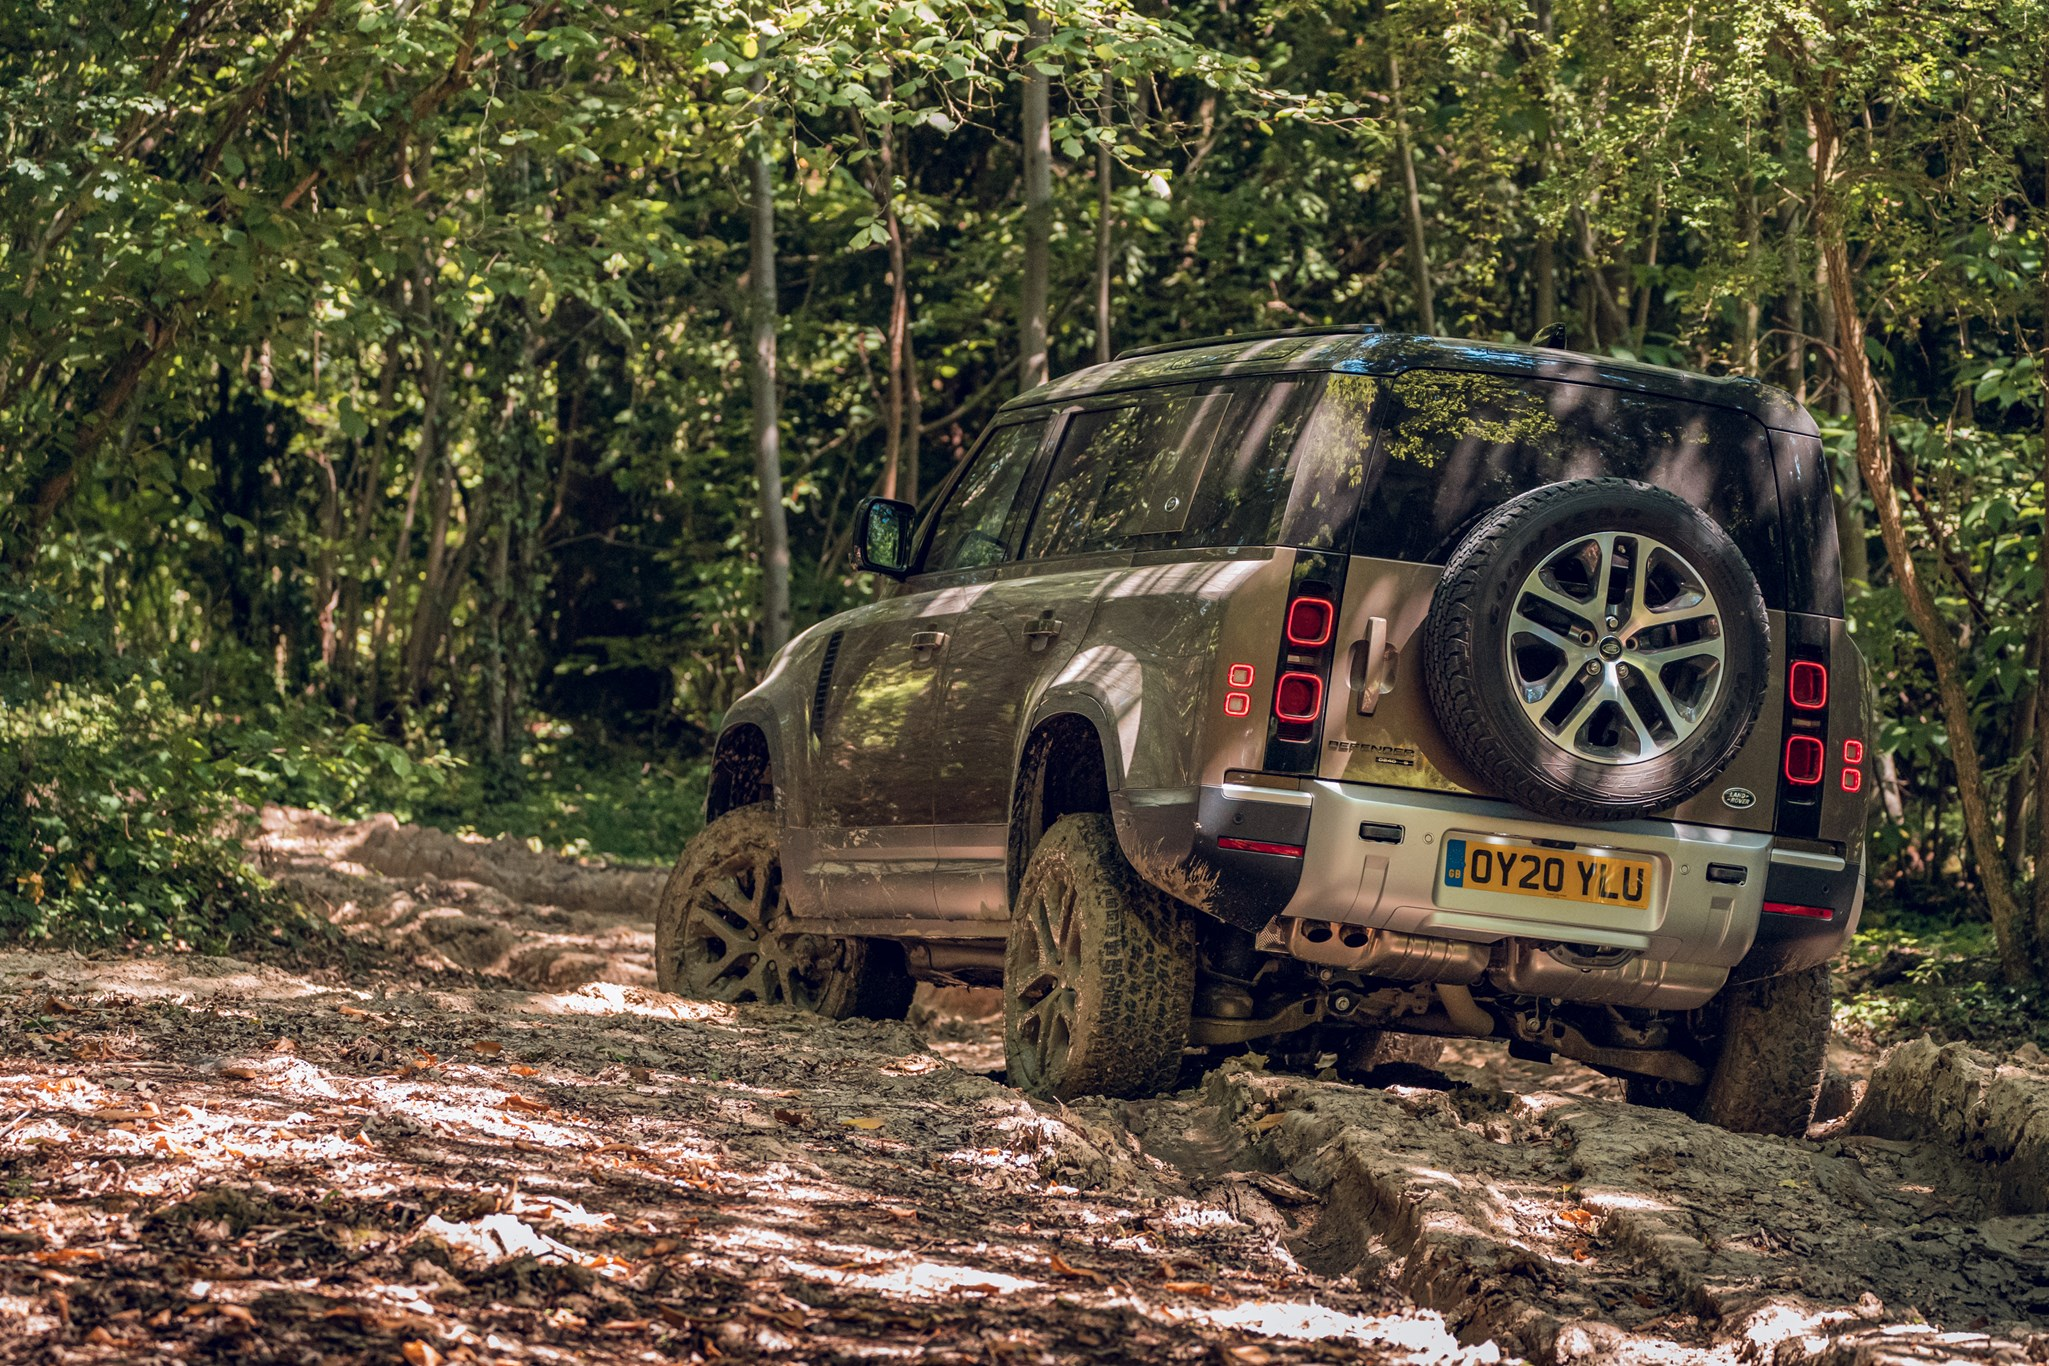 Land Rover Defender (2020) off-road view from rear, driving